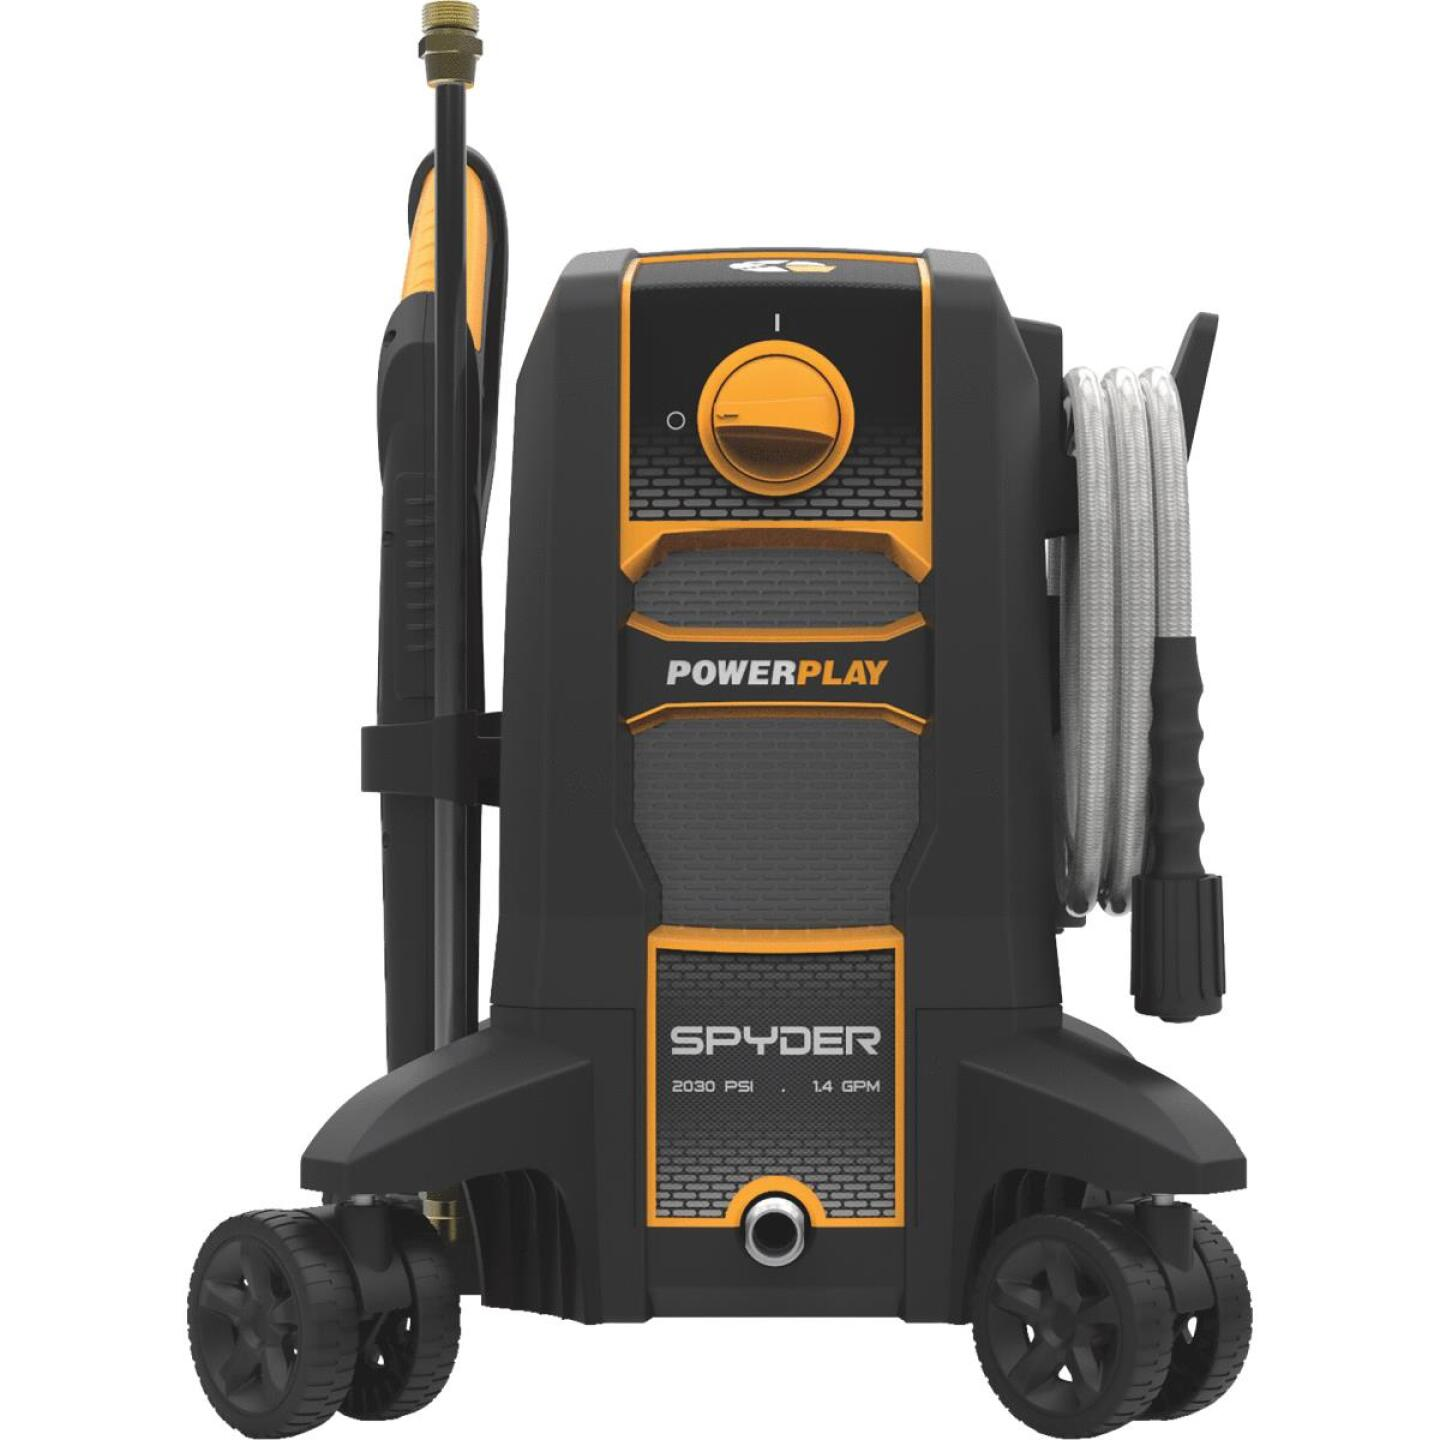 Powerplay Spyder 2030 psi 1.4 GPM Cold Water Electric Pressure Washer Image 3